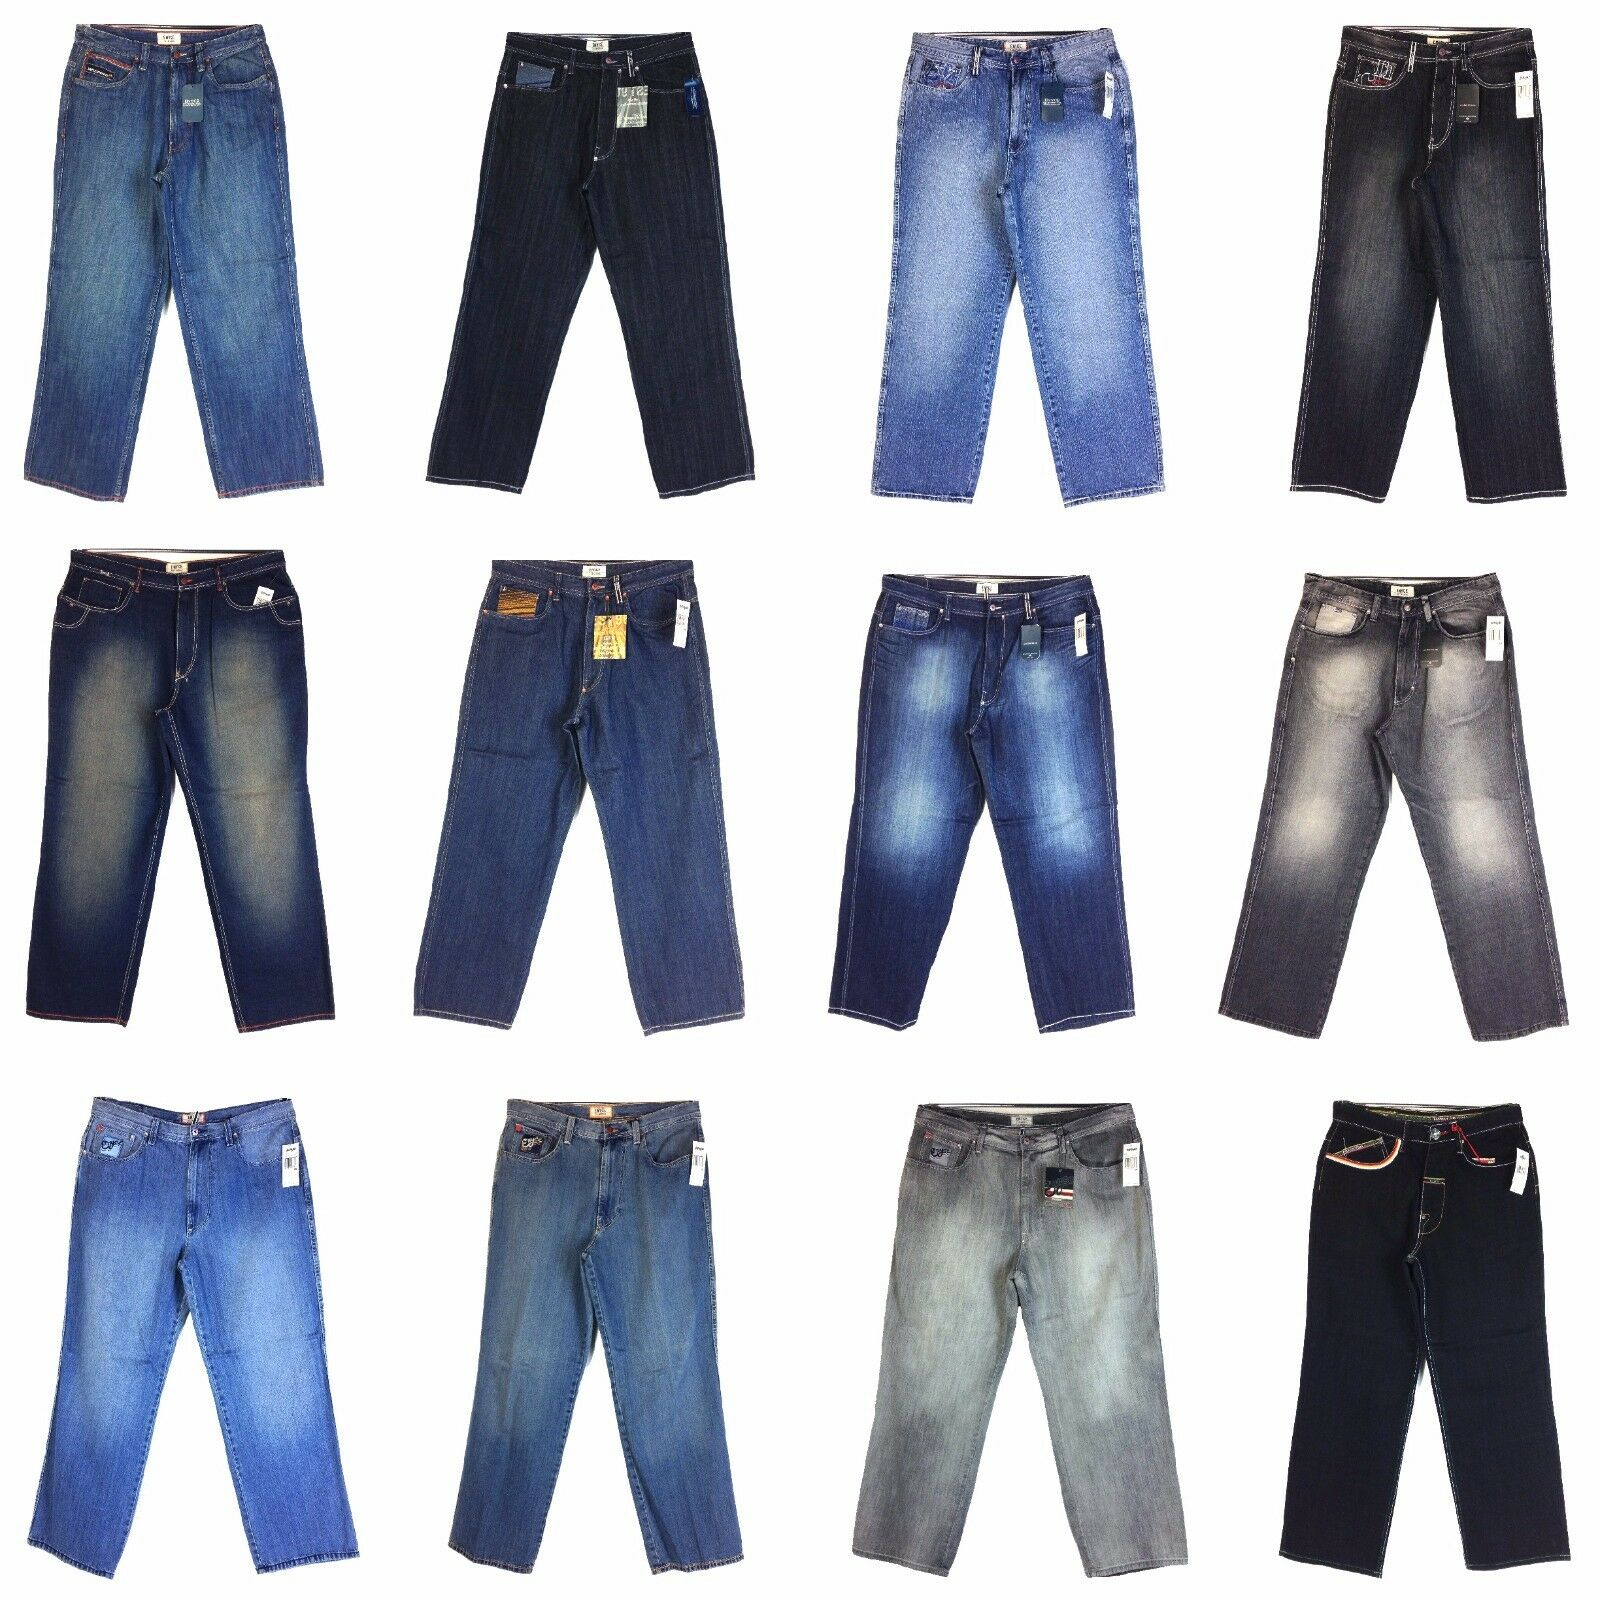 Vintage Enyce Design Men's New Jean, Old school Baggy Styles Assorted, Group [6]